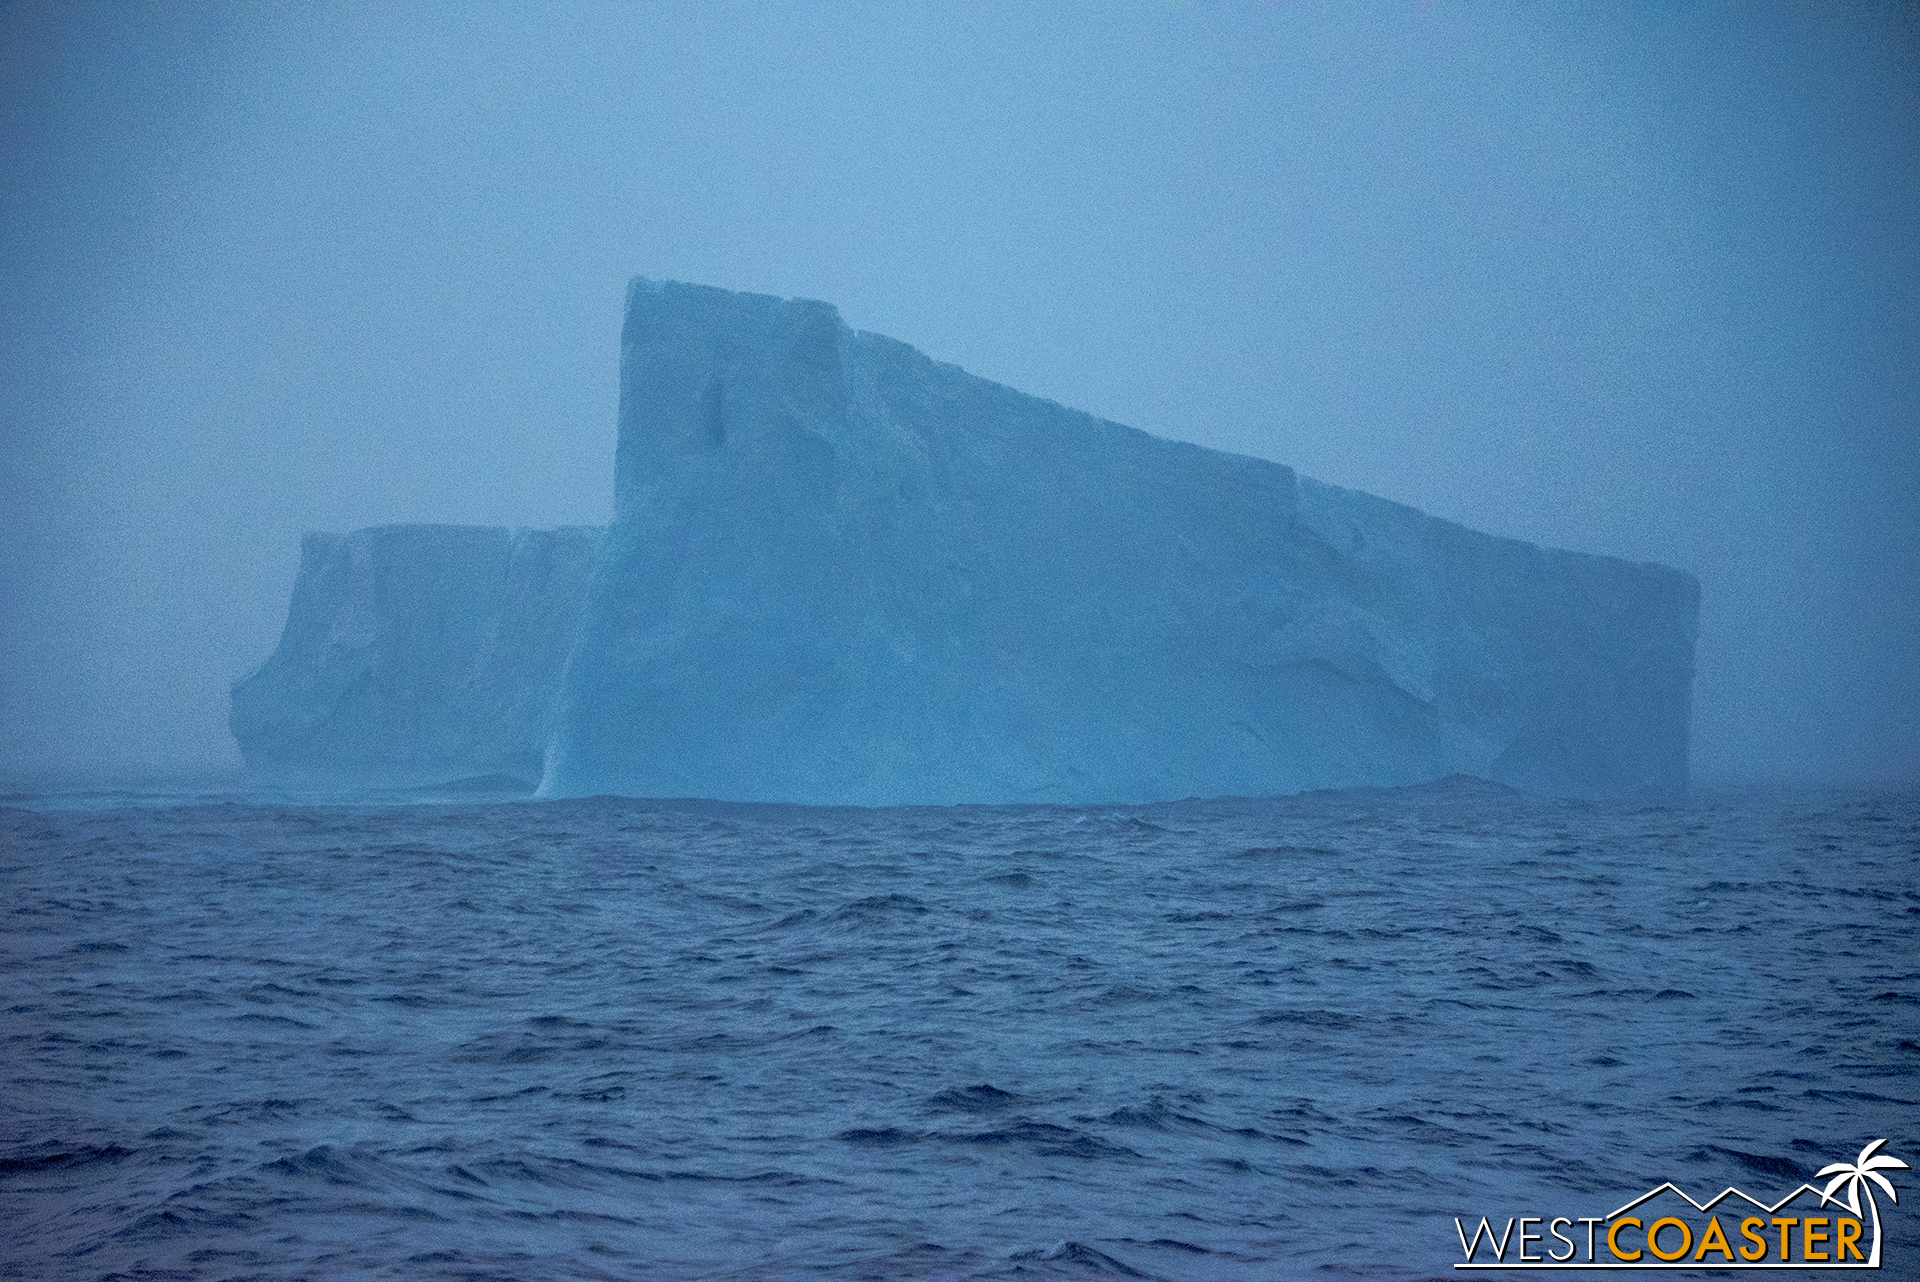 Late on our first full day at sea, we spotted a large iceberg drifting by.